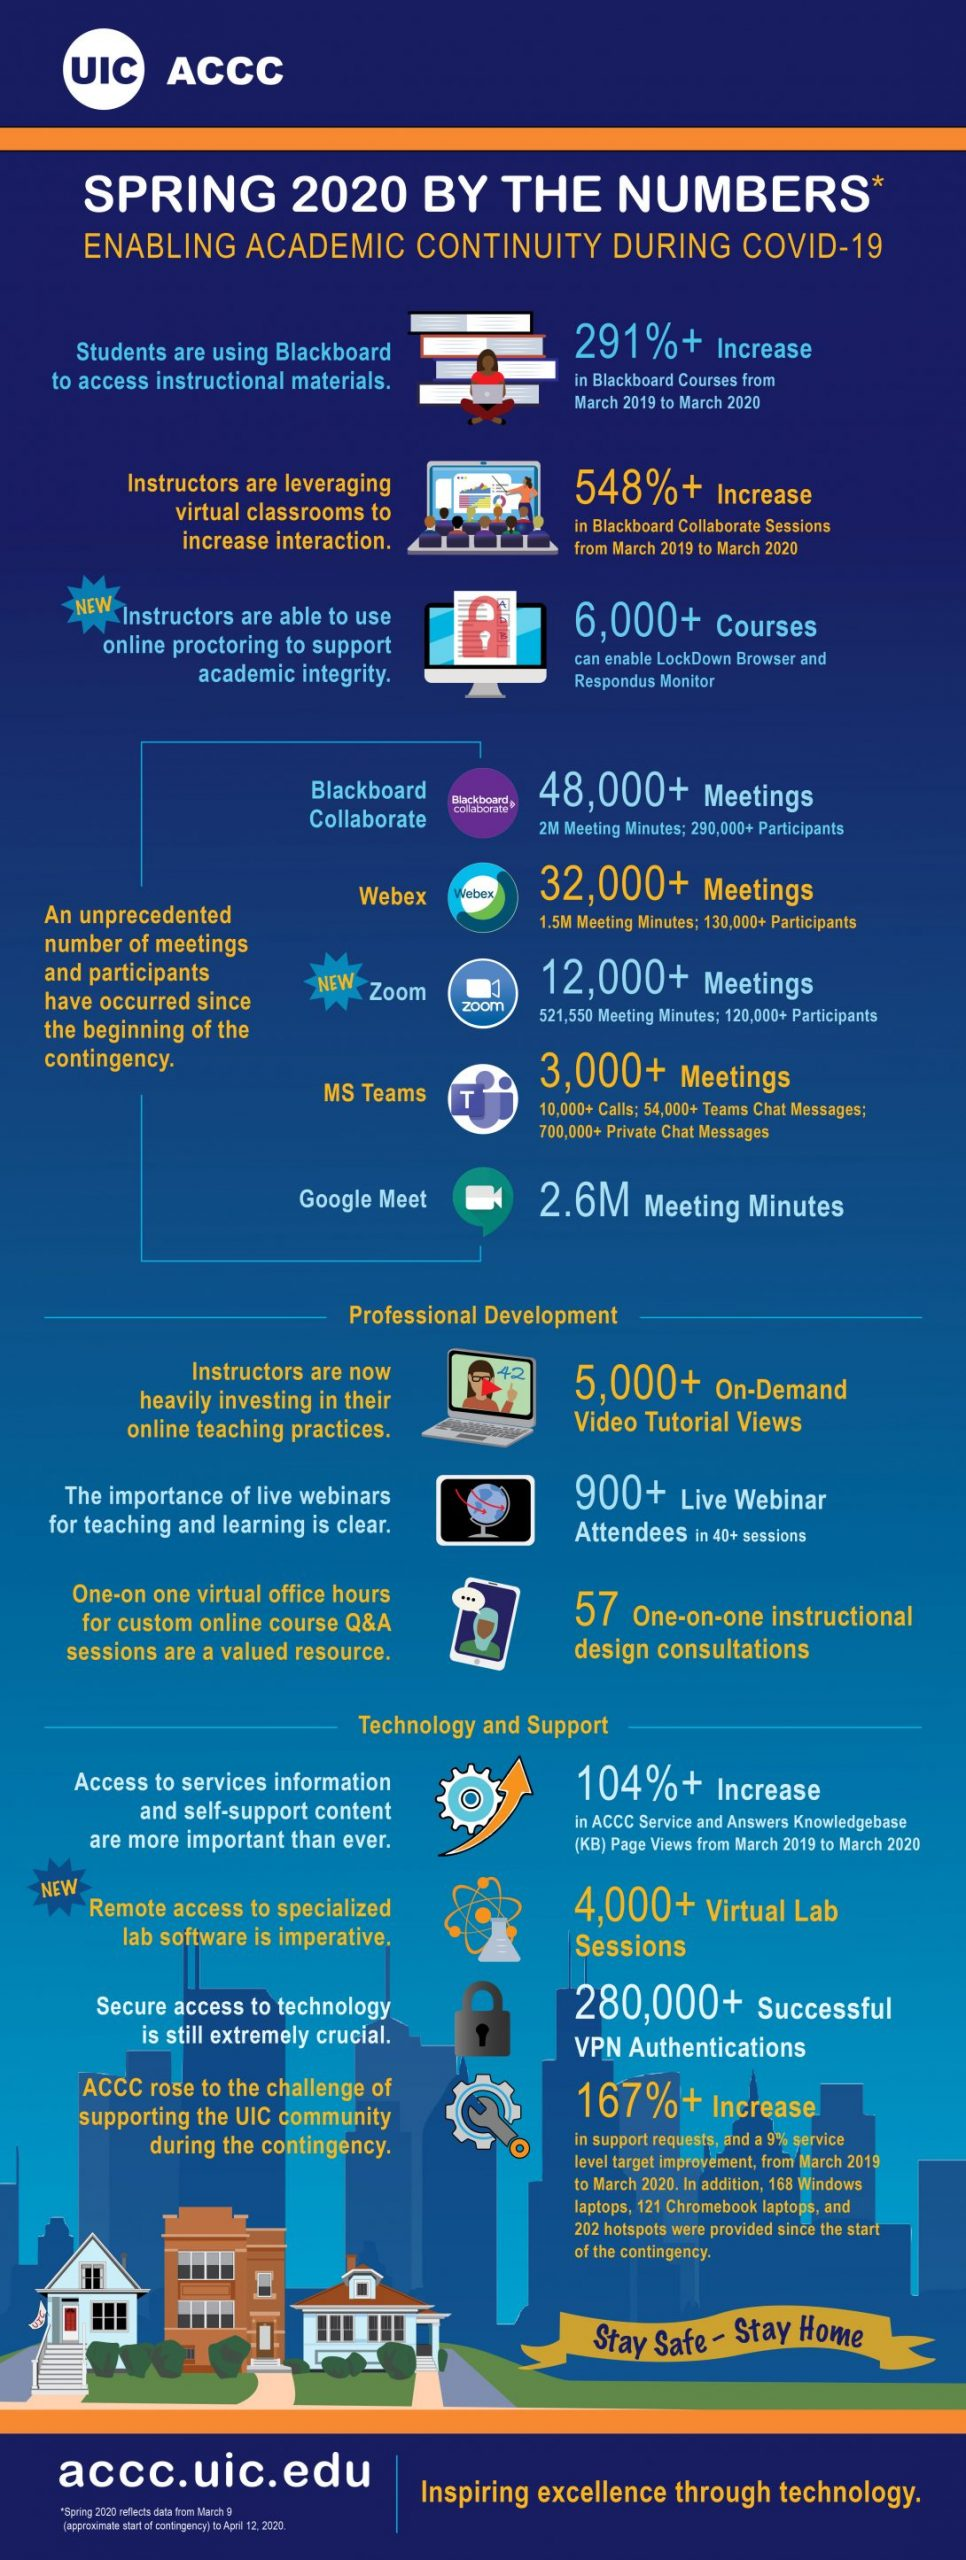 COVID-19 Impact on Remote Collaboration and Conferencing service usage at UIC. Infographic.